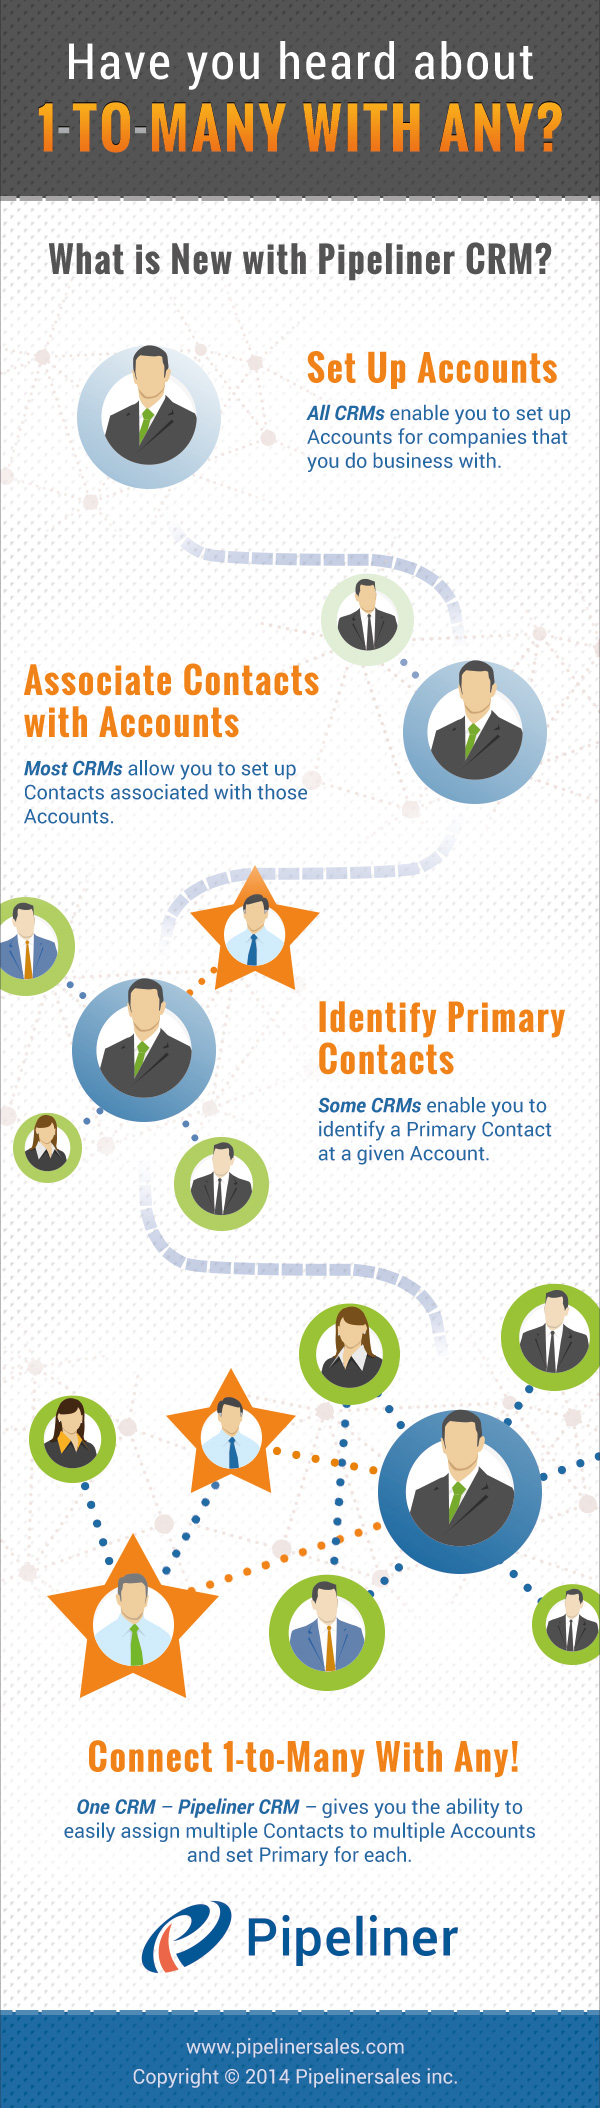 Infographic: 1-to-Many-with-Any